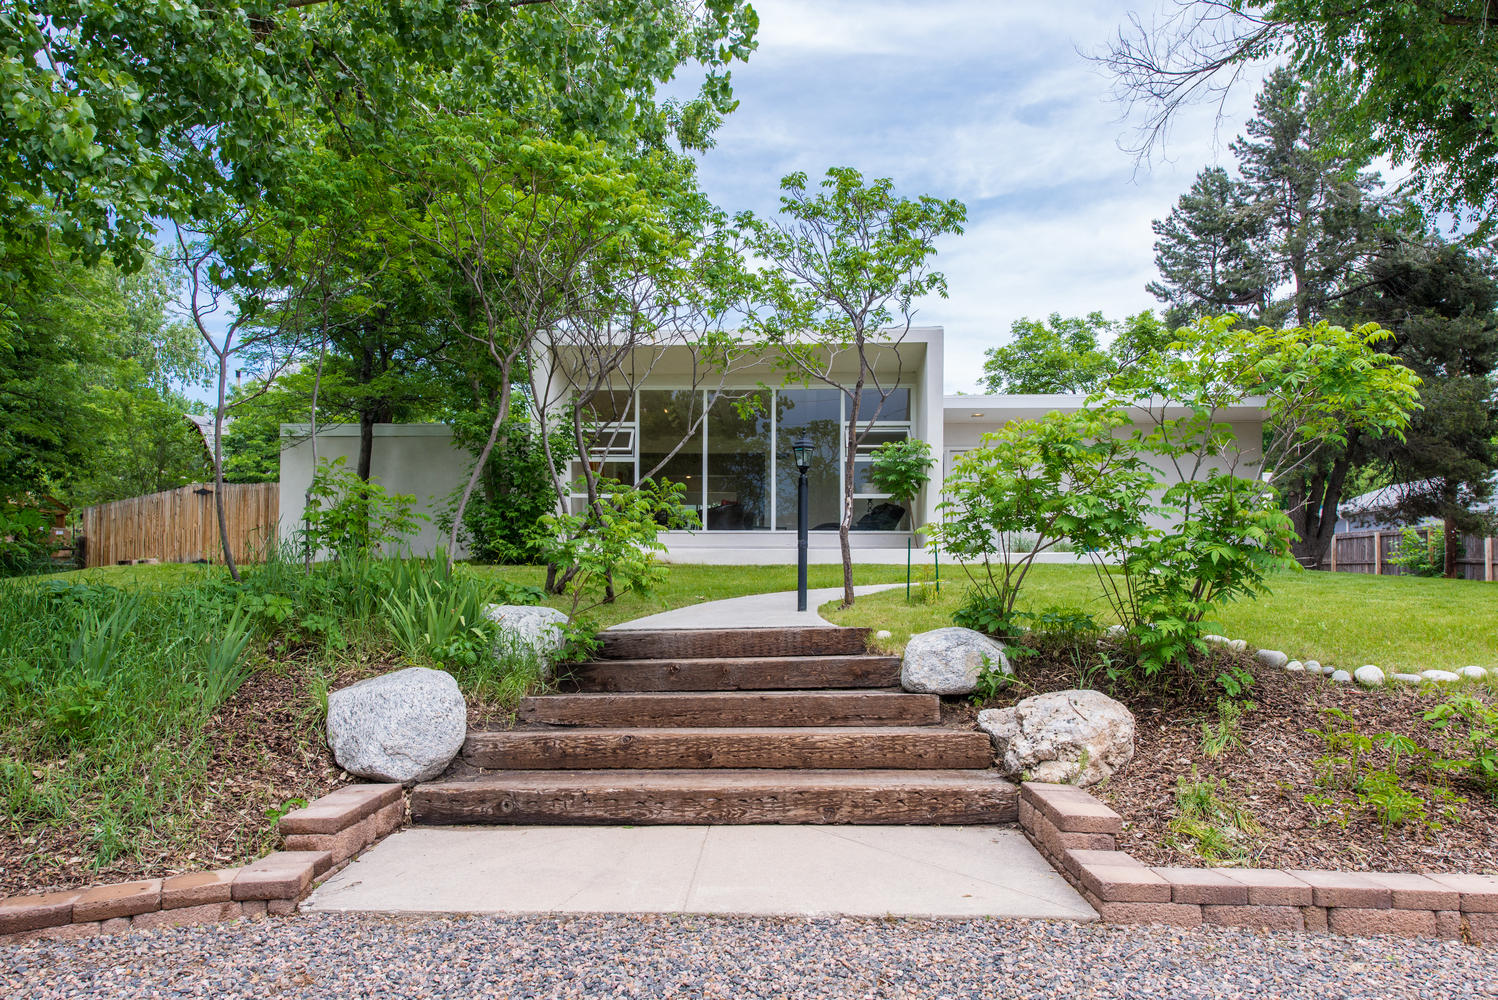 Single Family Home for Sale at Stunning Top to Bottom Updated Home 1290 South Quebec Way Denver, Colorado, 80231 United States